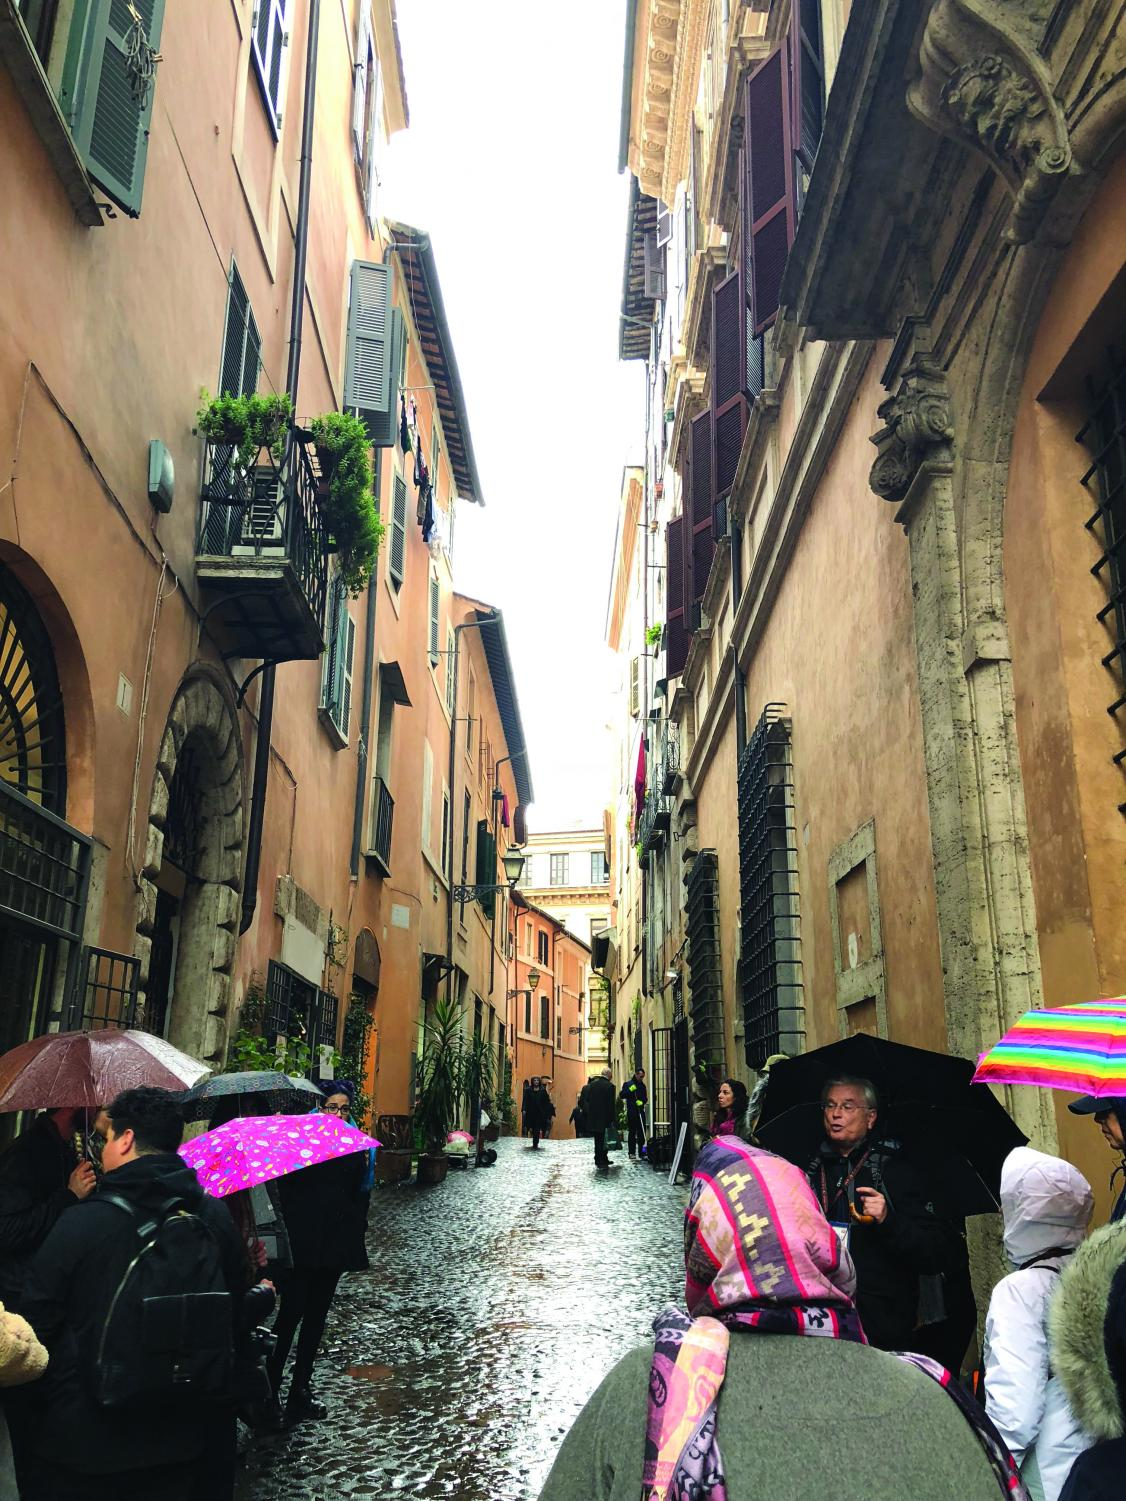 GCC's Study Abroad to Italy in winter 2018 took to the streets of Rome, but takes roads less traveled to immerse in local culture.